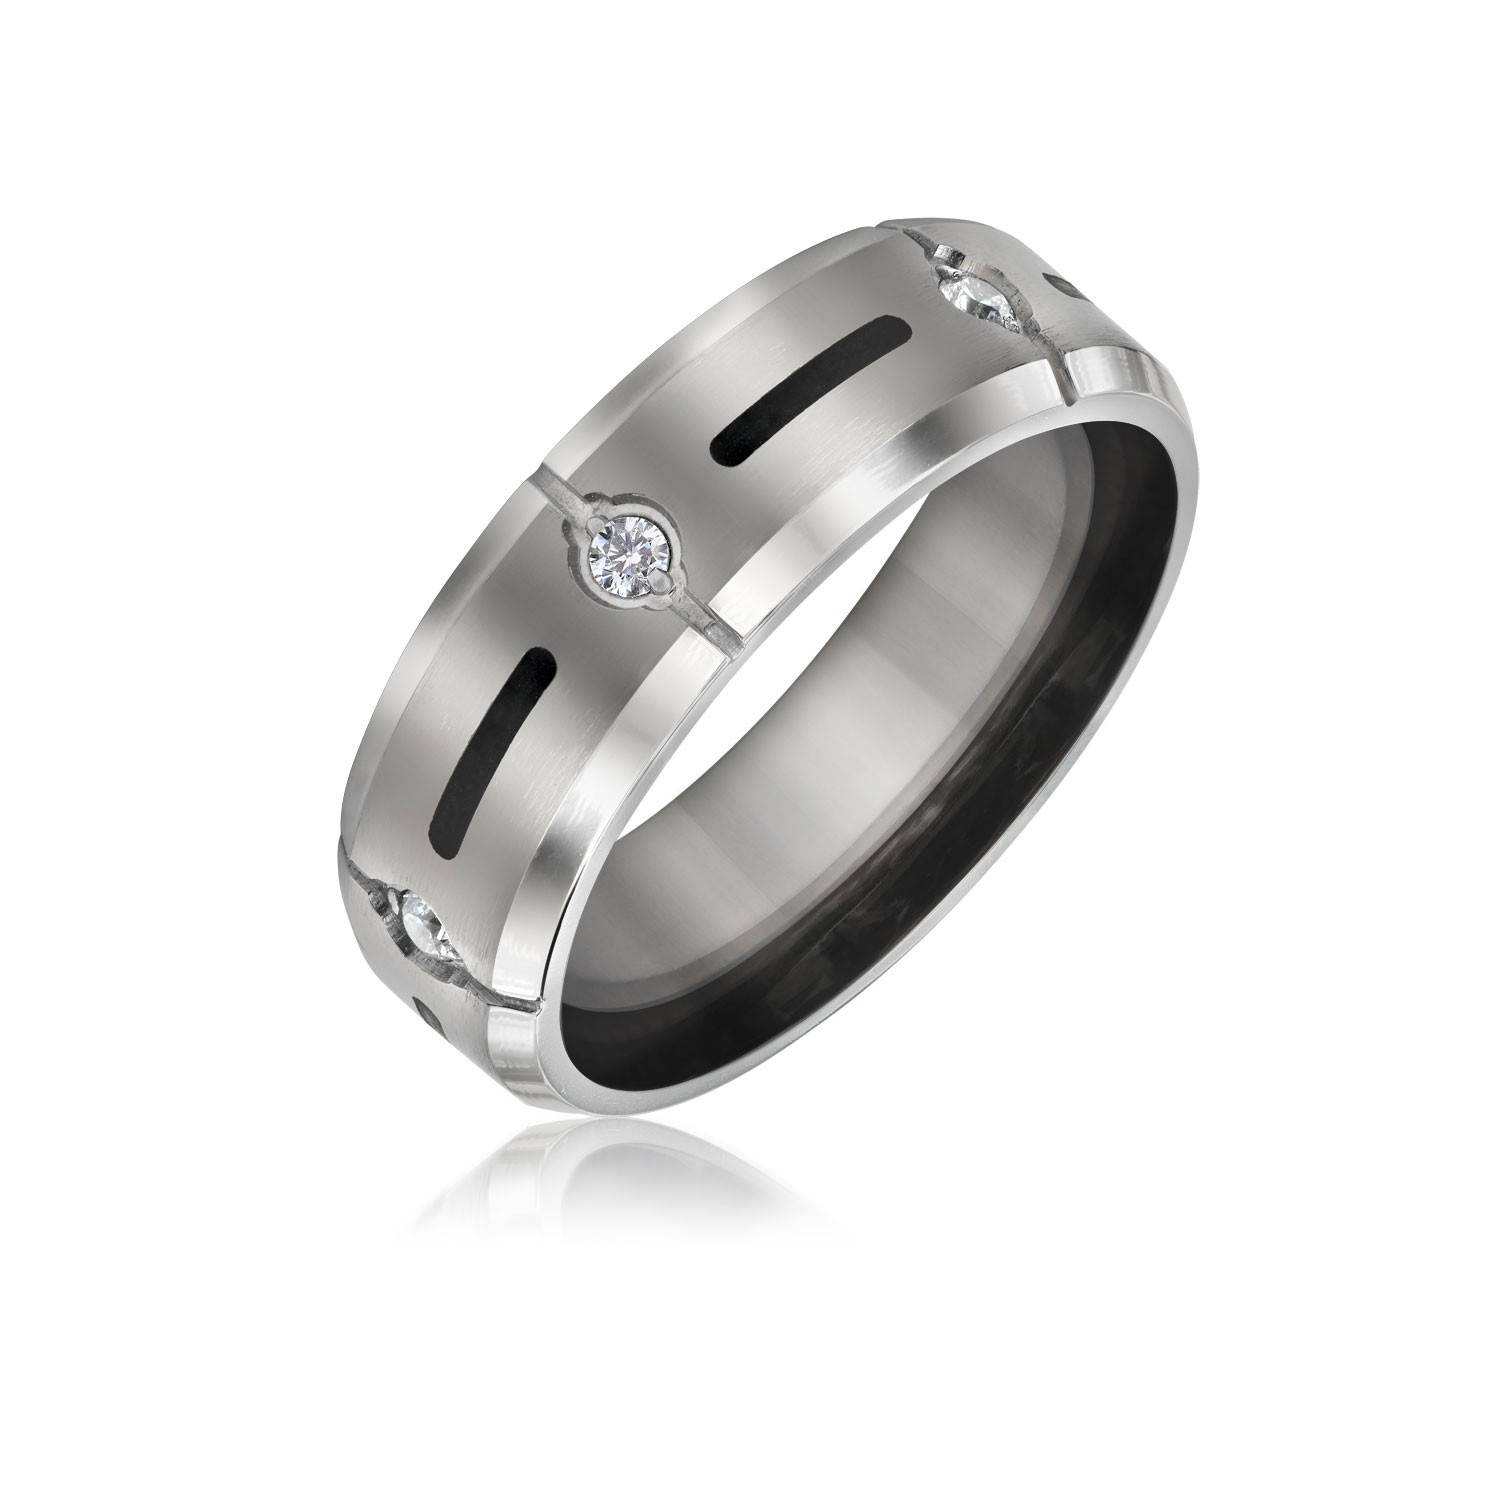 Mens Titanium Ring Cz Wedding Band Ring With Resin Inlay 7Mm For 7Mm Titanium Wedding Bands (View 9 of 15)